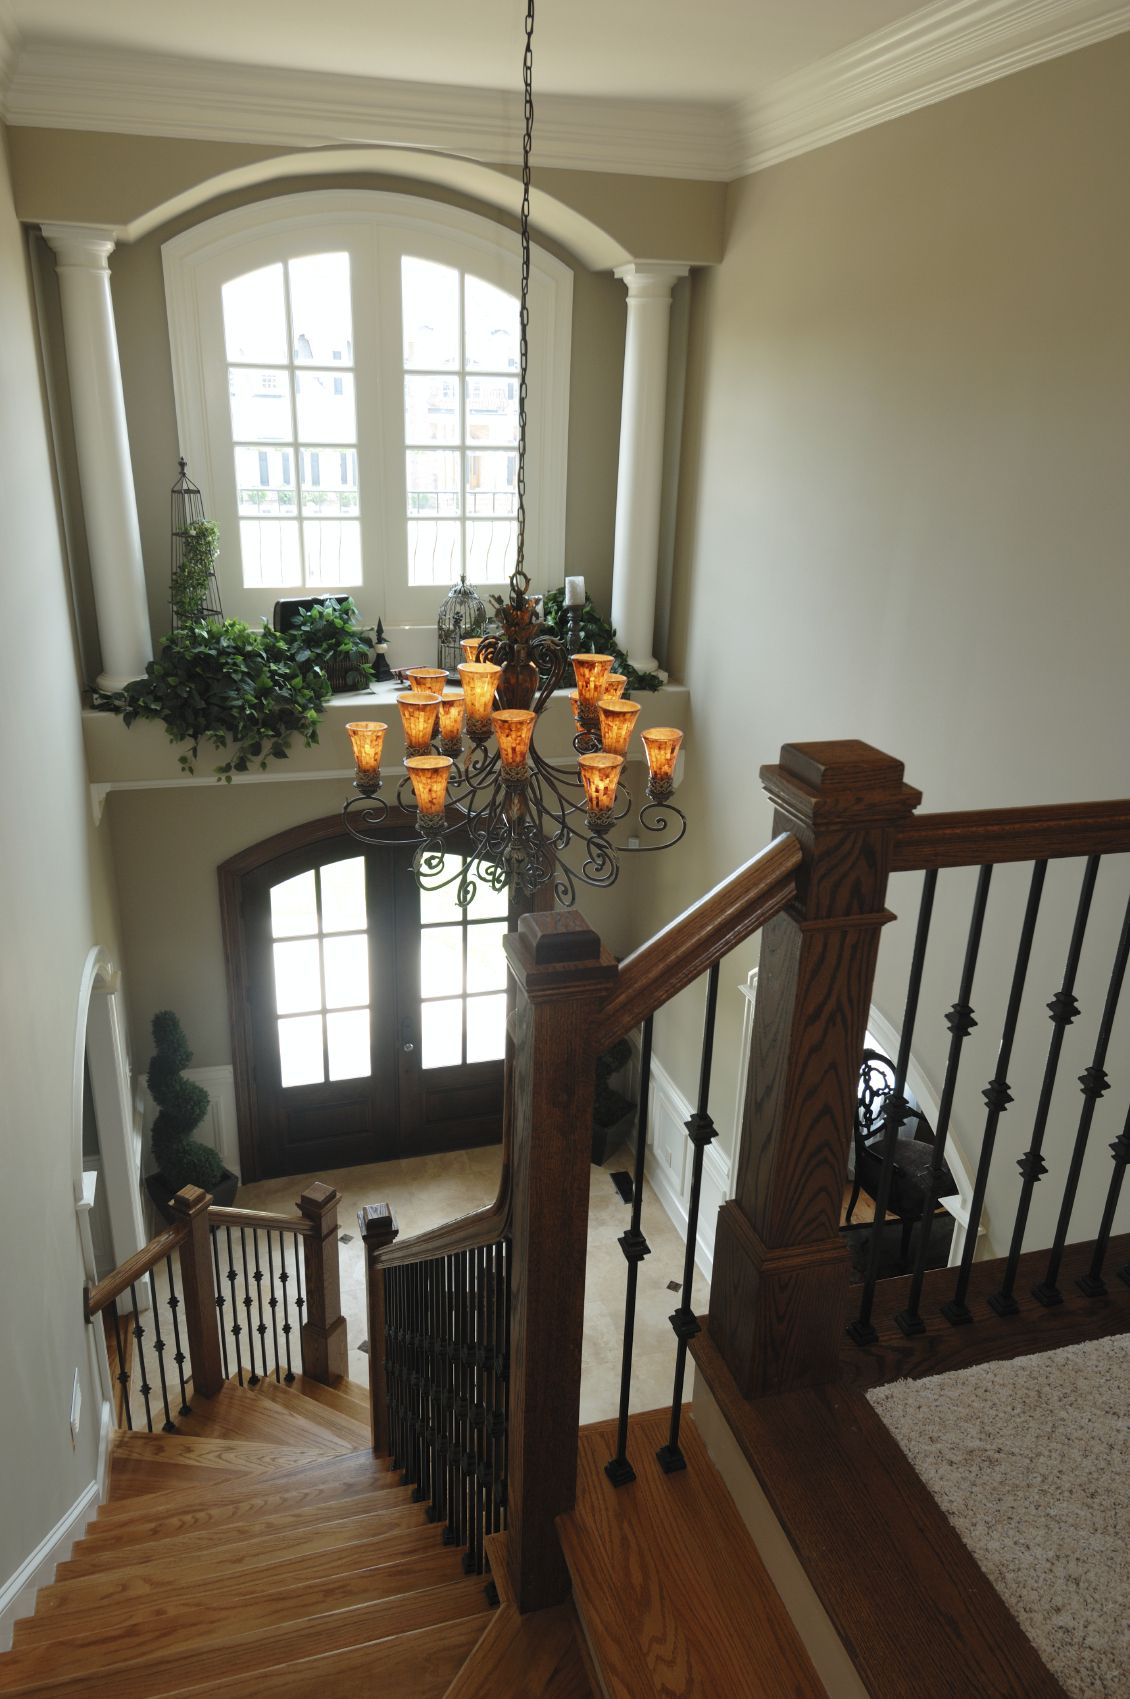 Foyer Decorating Ideas 199 Foyer Design Ideas For 2017 All Colors Styles And